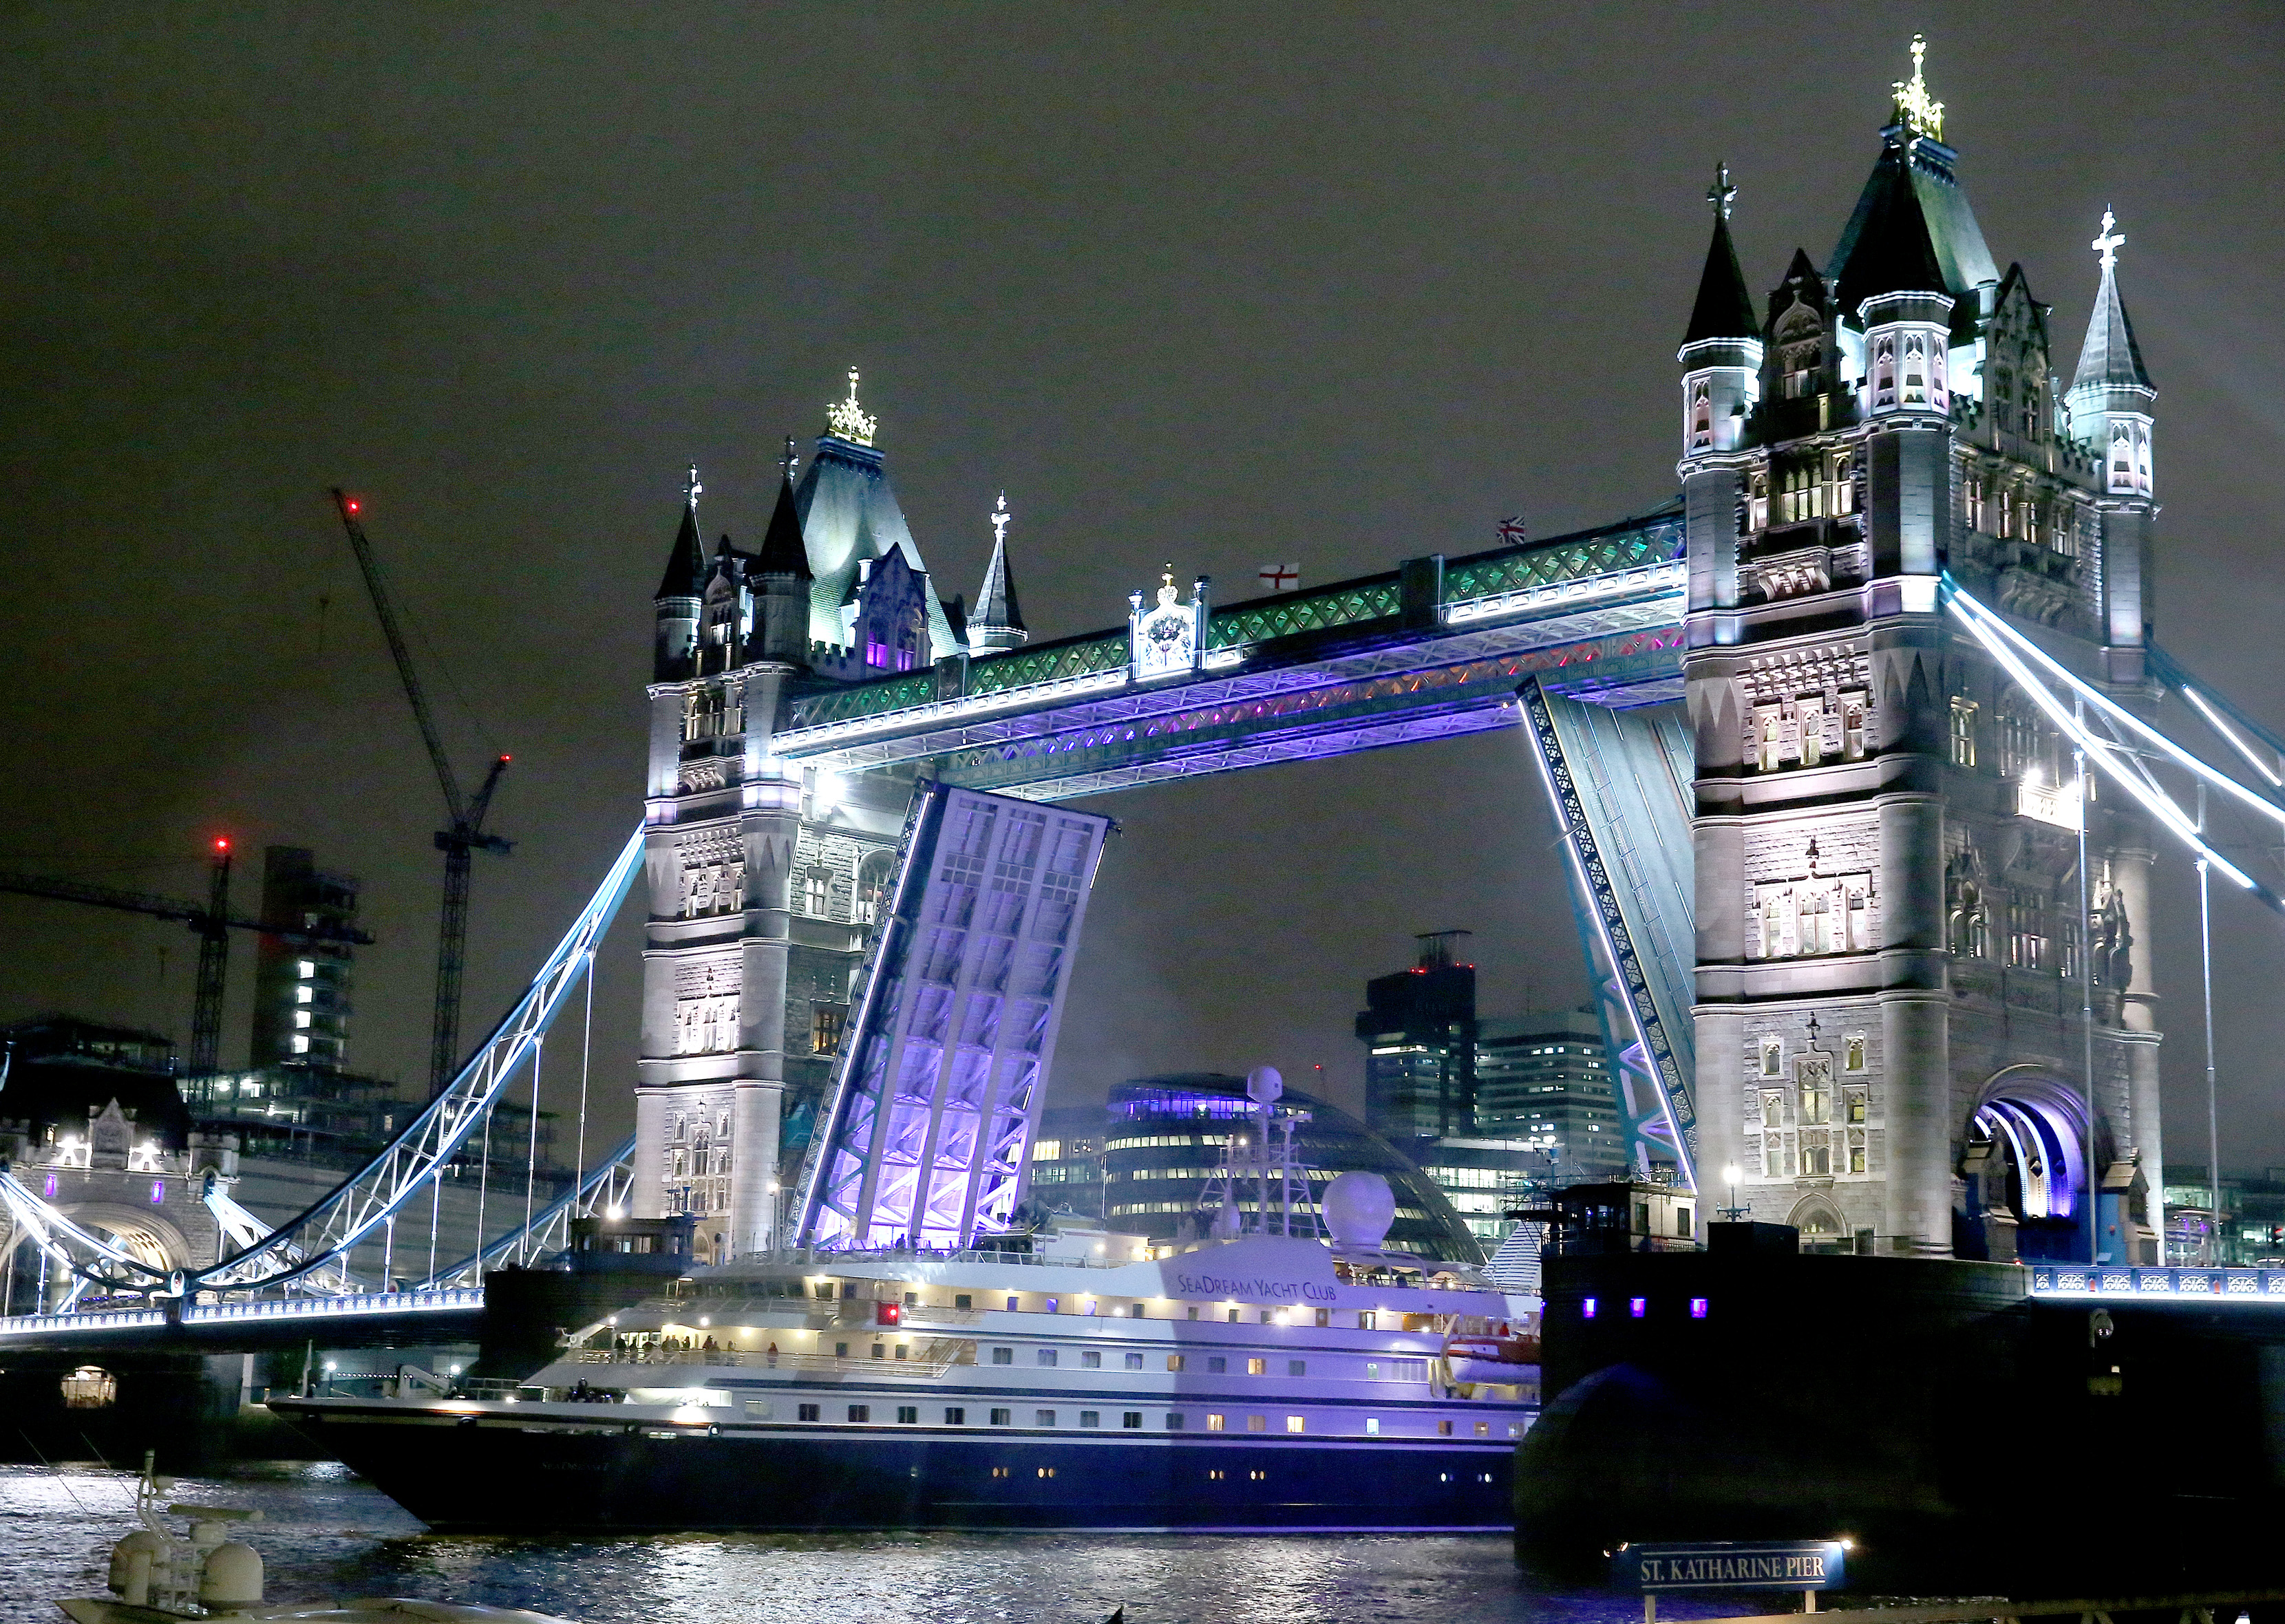 Exclusive ports | Tower Bridge cruise Port | The Cruise Line Blog